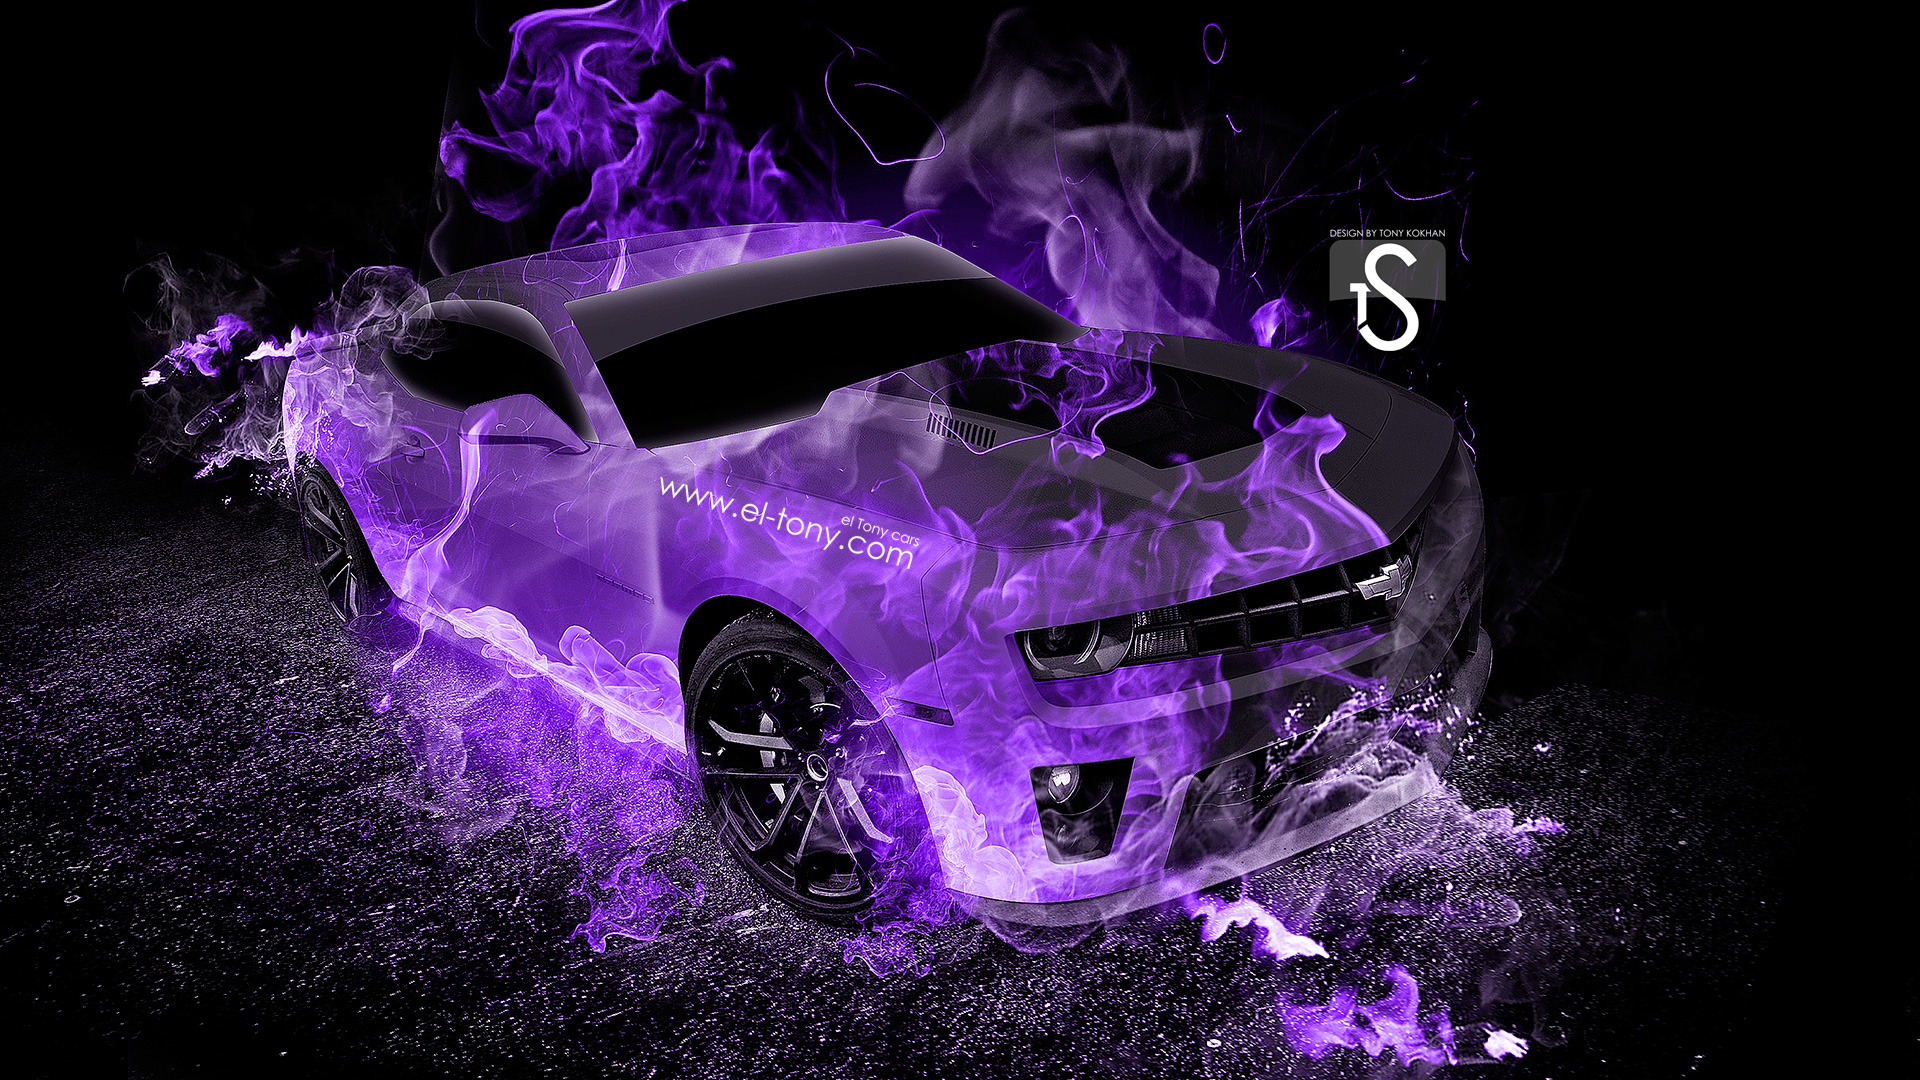 Superbe Chevrolet Camaro Violet Fire Abstract Car 2013 HD